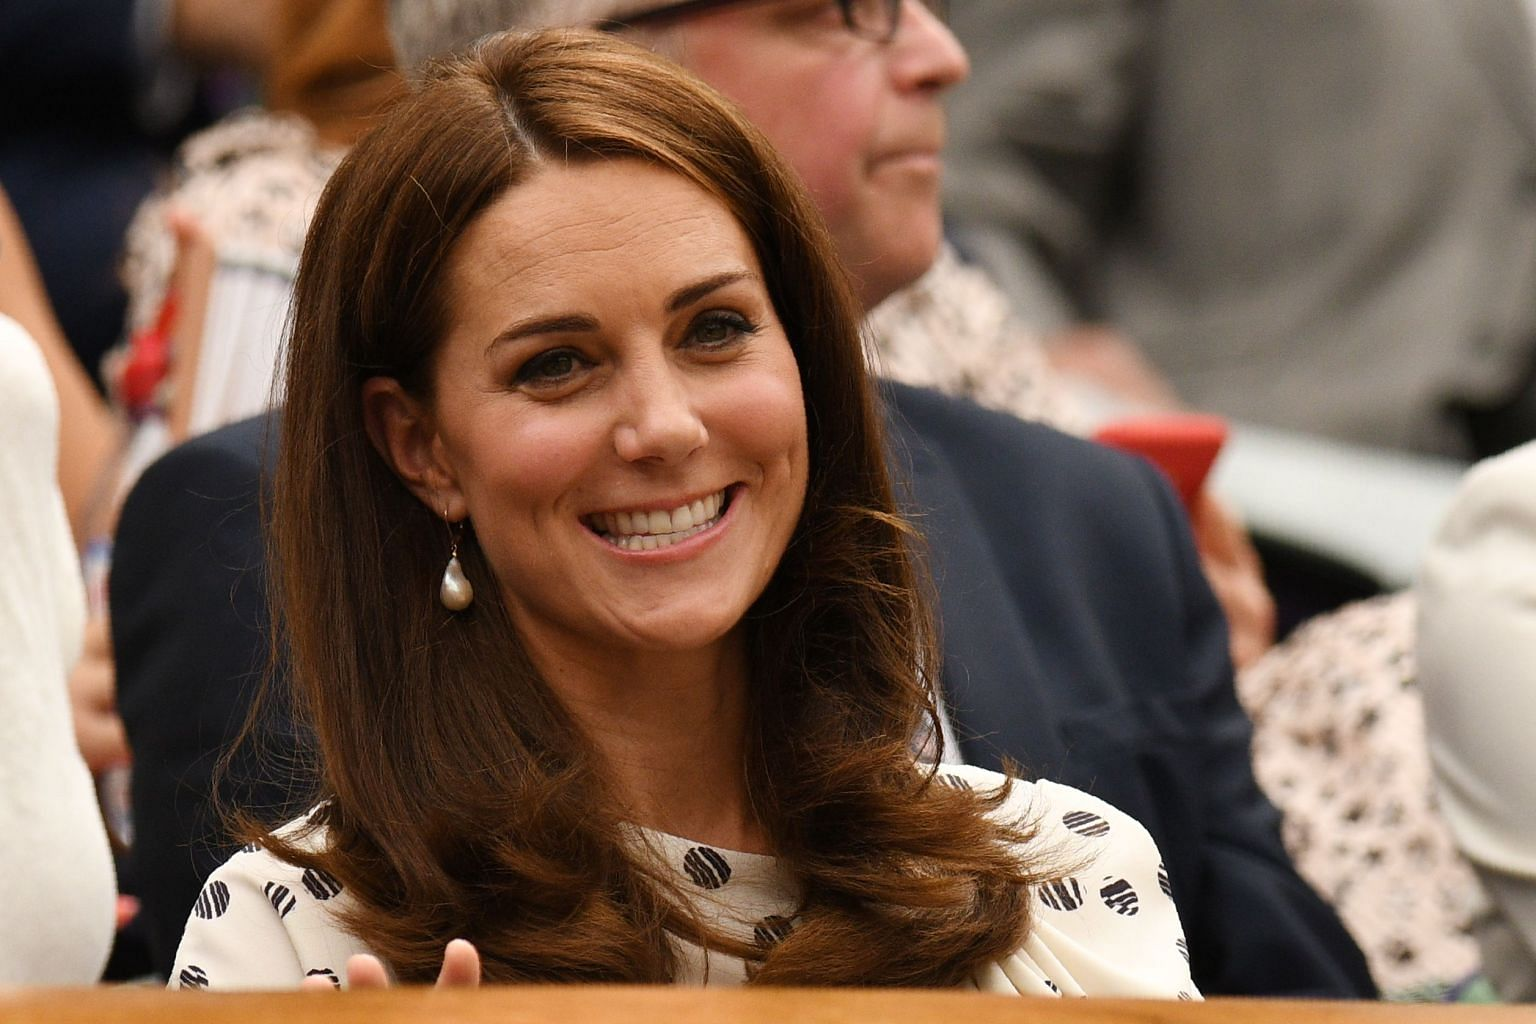 Kate Middleton Photos: French Magazine Loses Appeal To Reprint Images